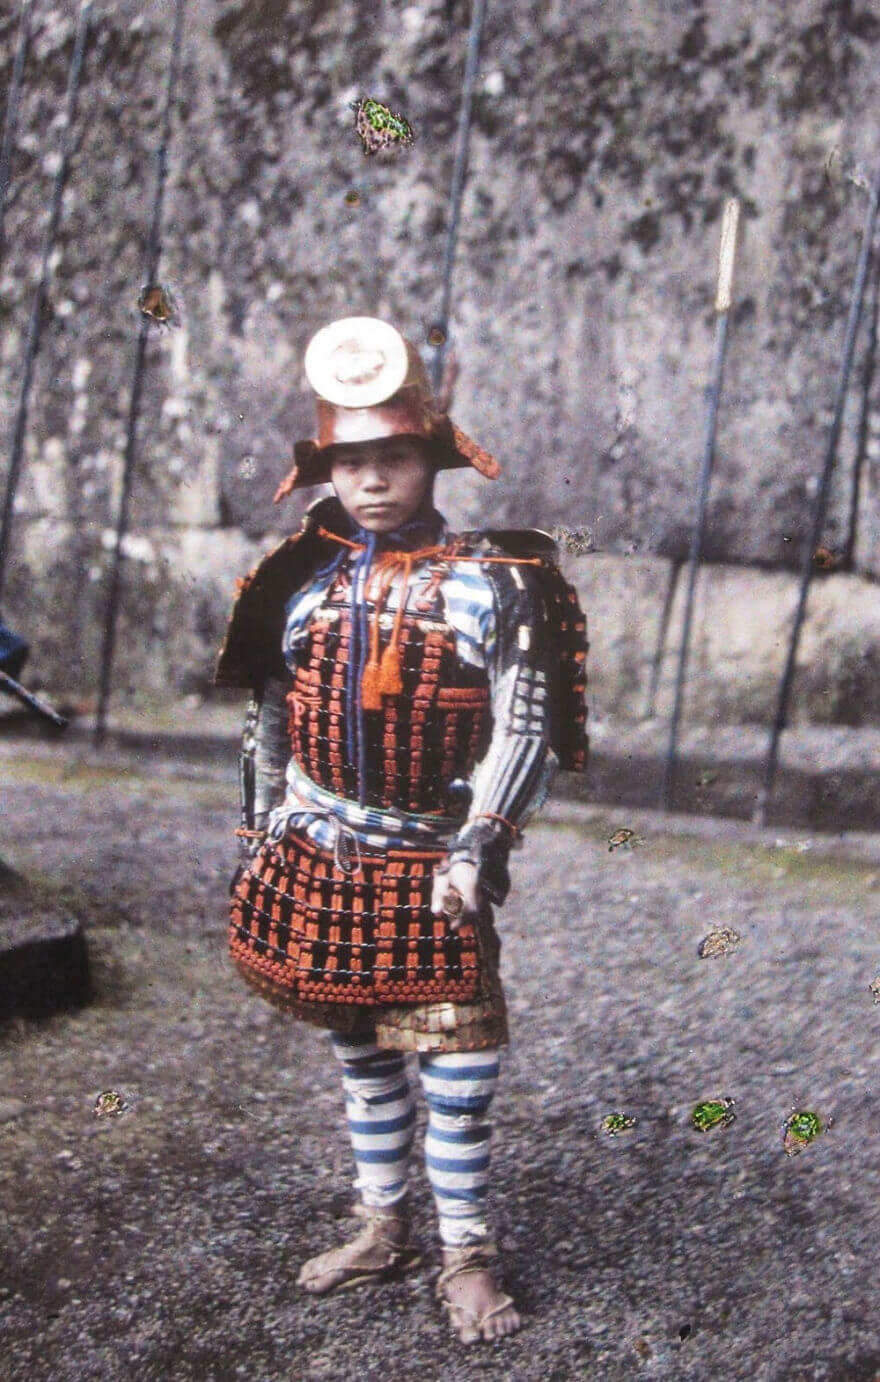 40 Old Color Pictures Show Our World A Century Ago - Apan (Young Samurai), 1912